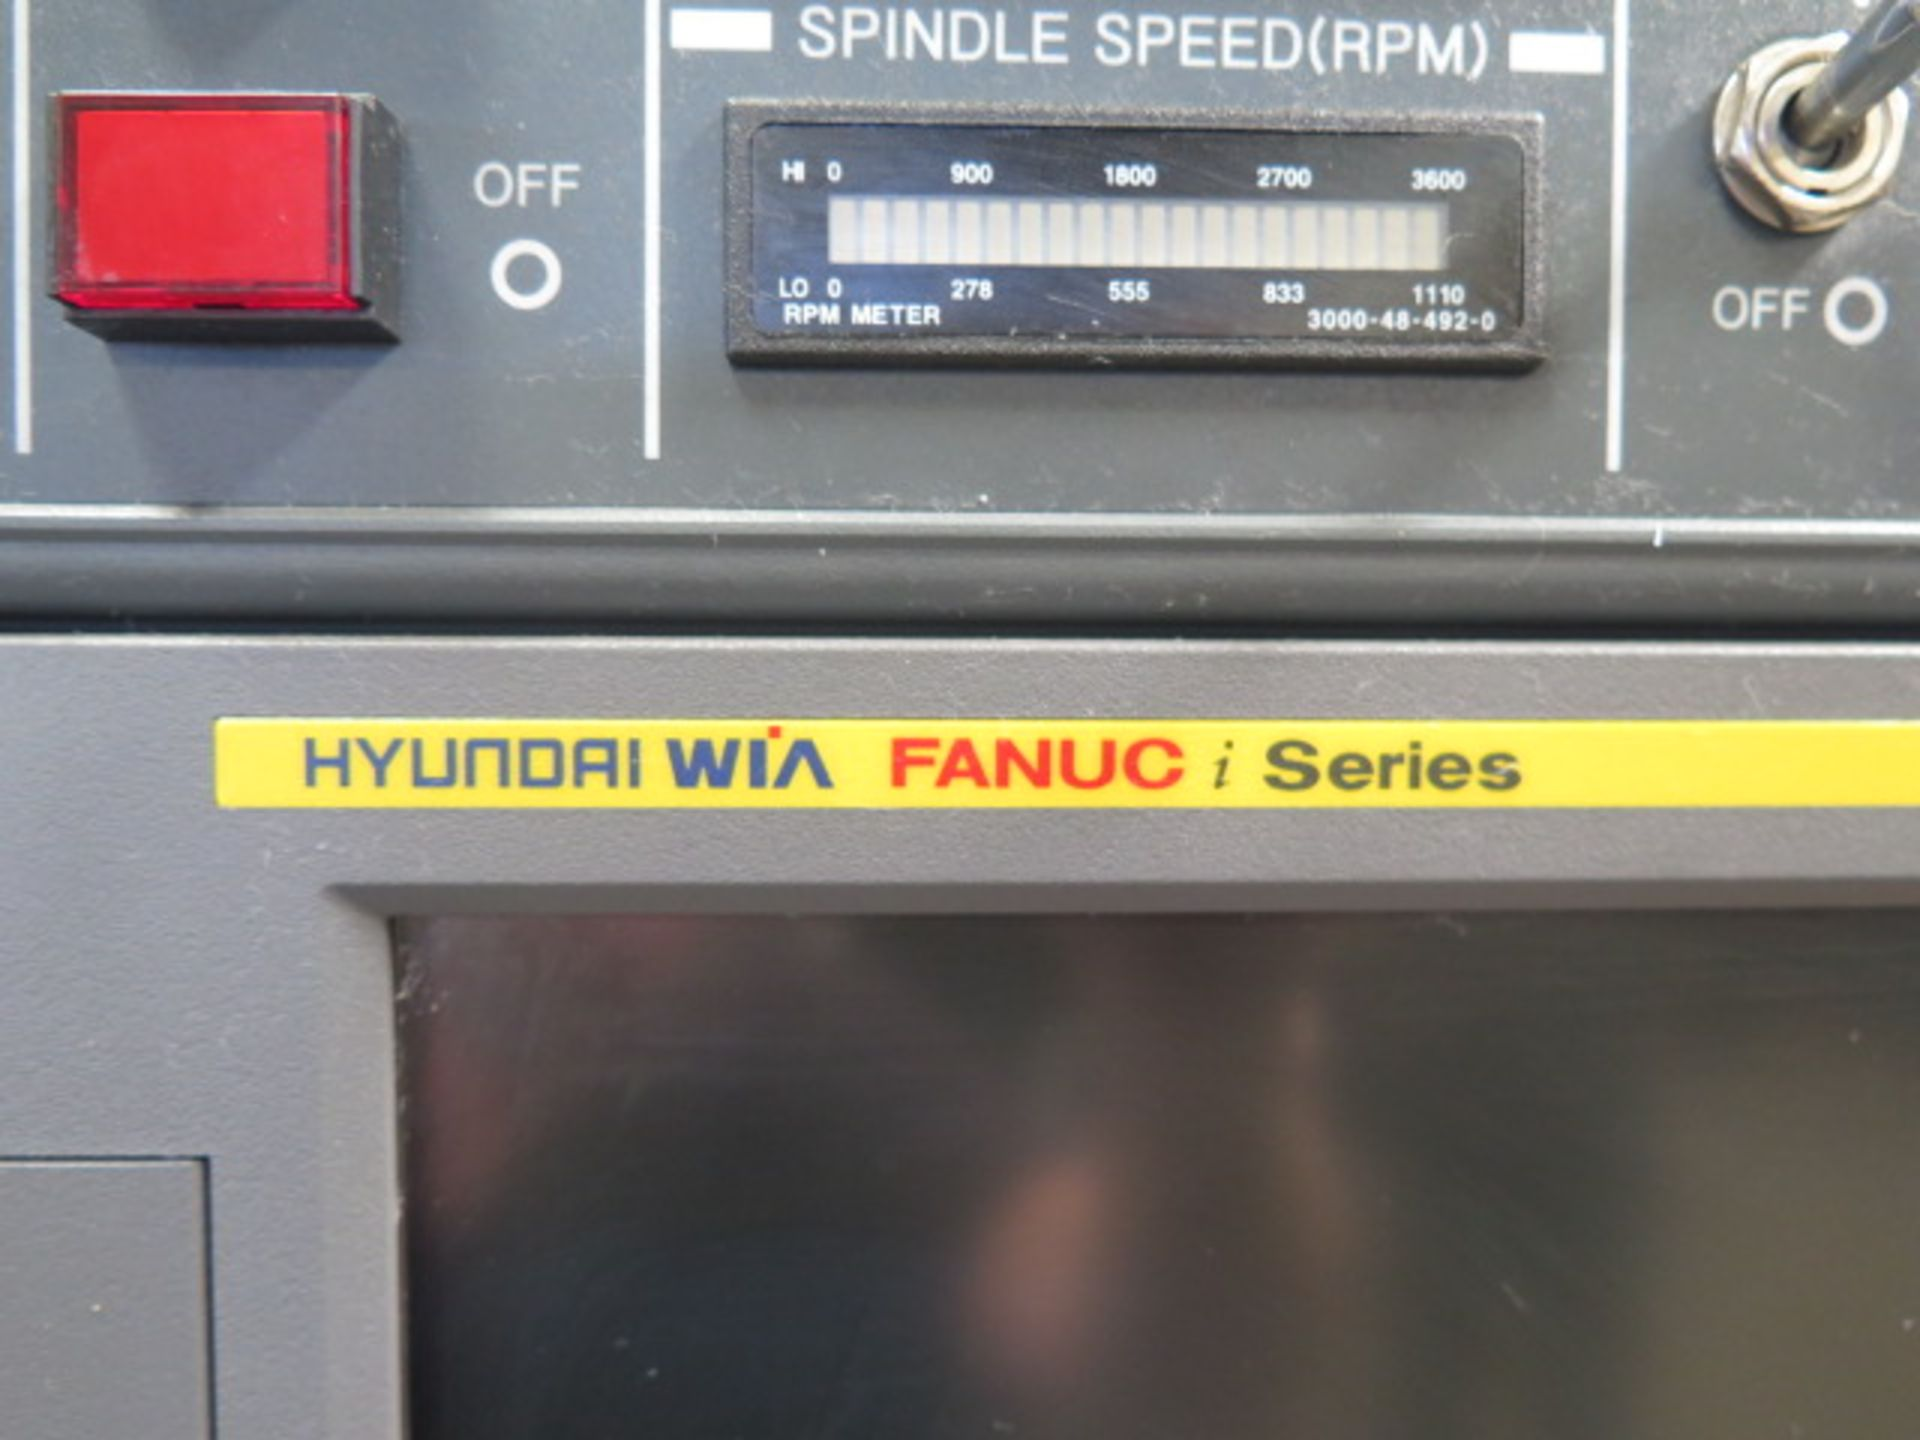 2016 Hyundai WIA L300LA CNC Turning Center s/n G3726-0083 w/ Fanuc i-Series Controls, SOLD AS IS - Image 6 of 20